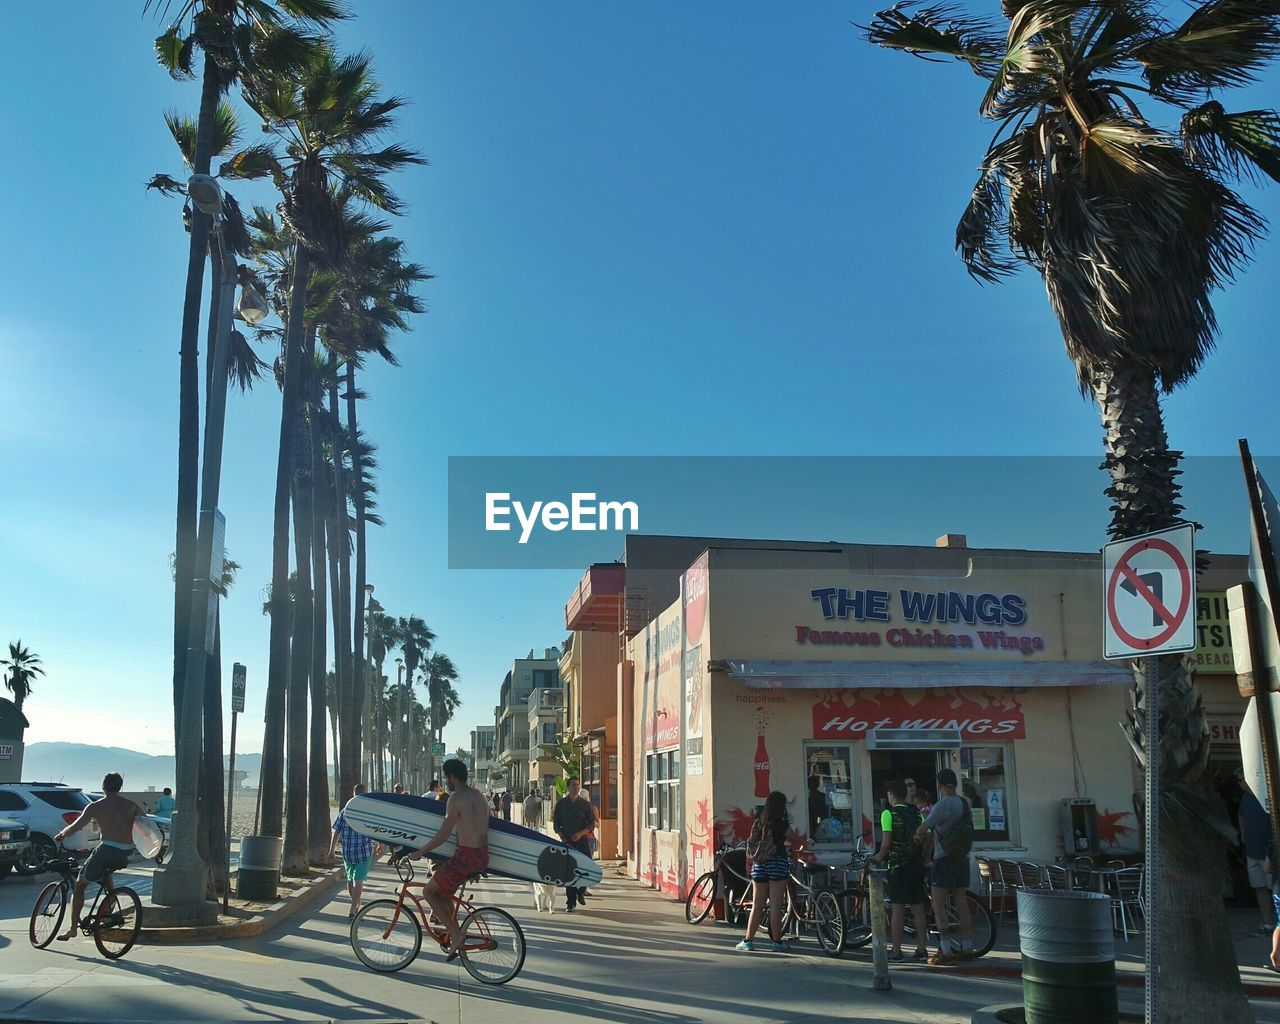 bicycle, day, built structure, real people, architecture, transportation, outdoors, building exterior, tree, men, palm tree, sky, women, city, clear sky, road sign, nature, mammal, people